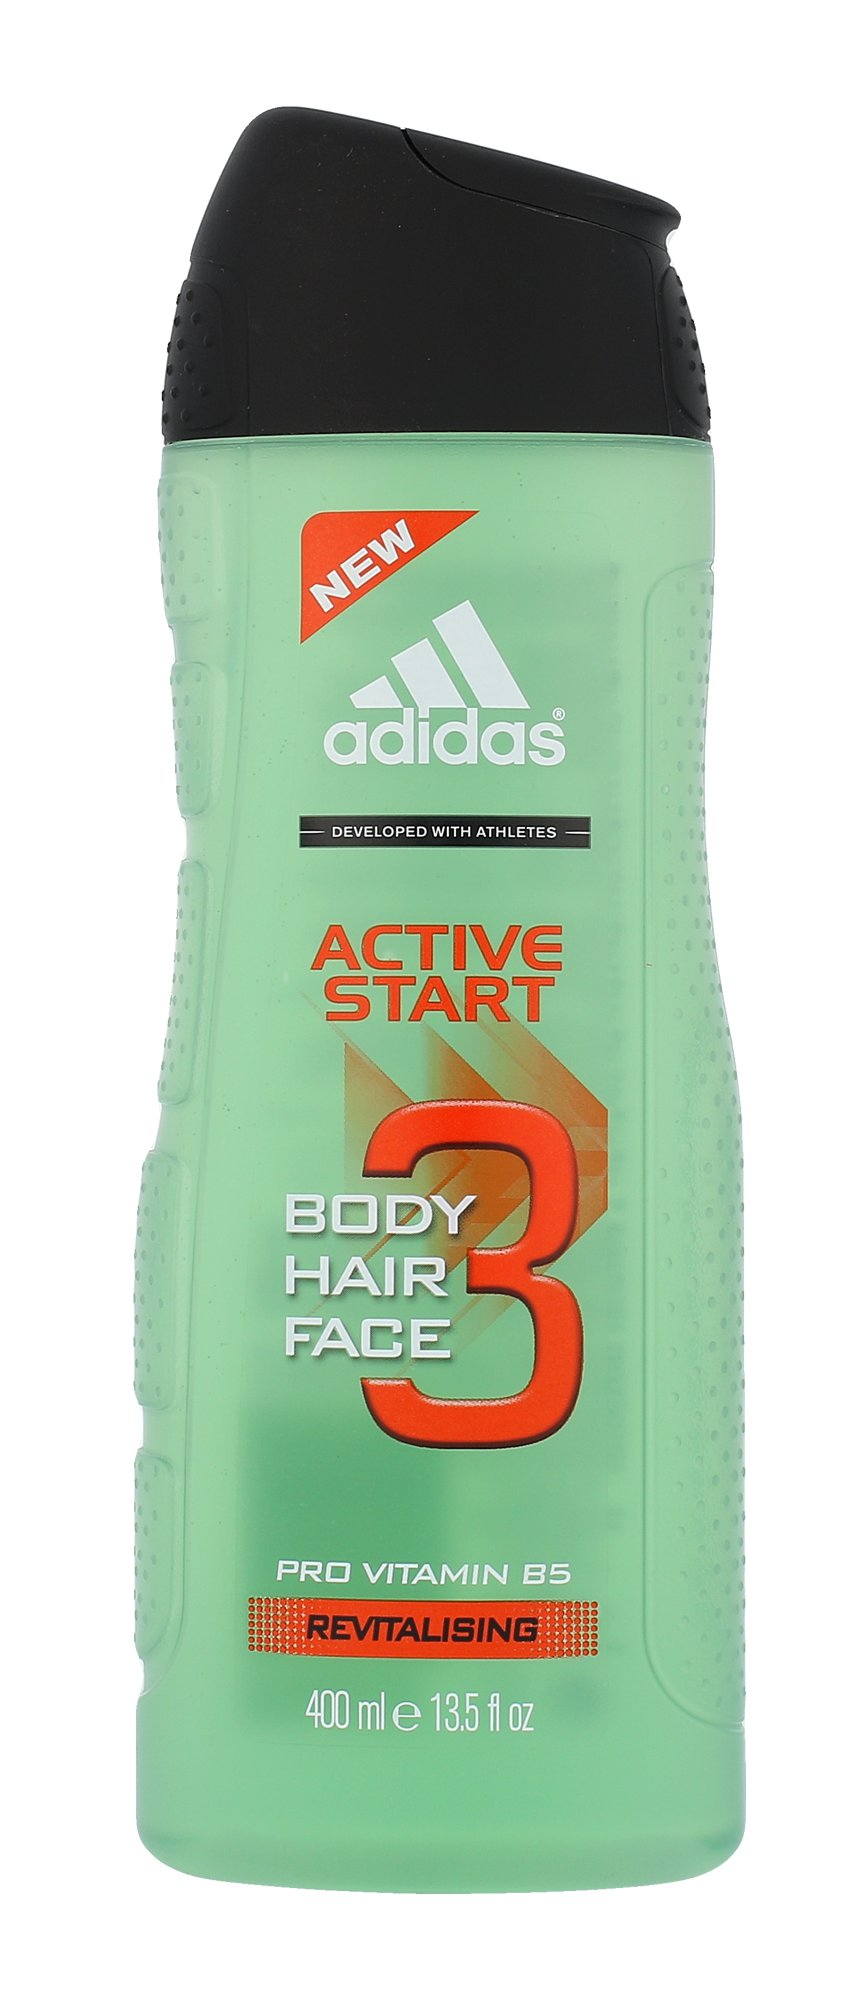 Adidas Active Start 3in1, Sprchovací gél 400ml